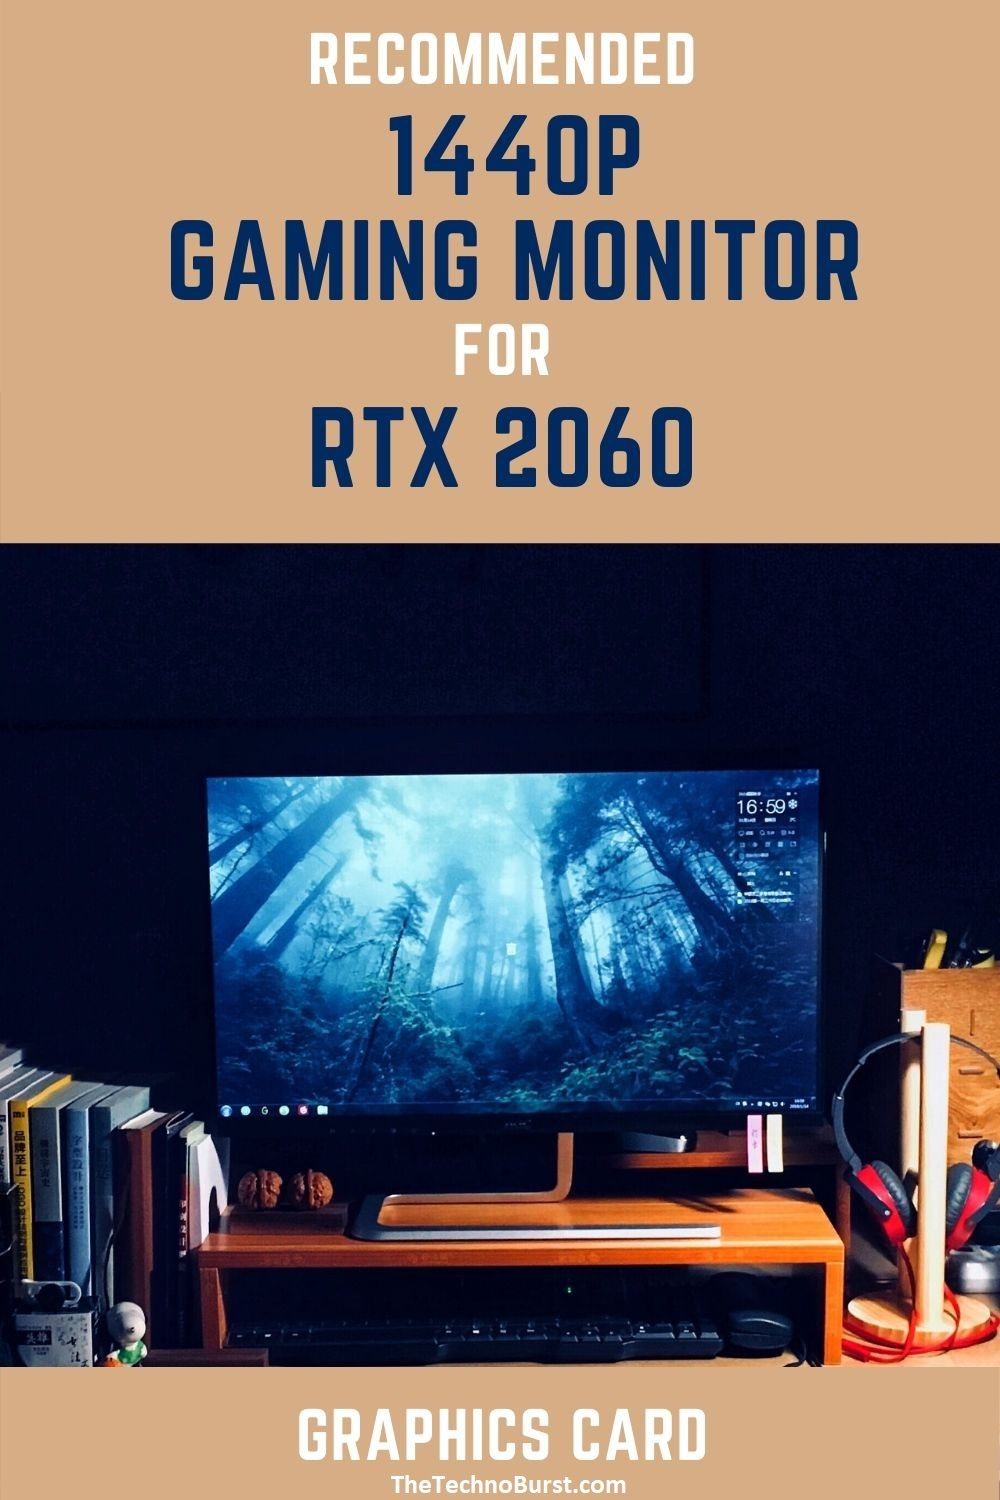 Recommended 1440p Gaming Monitors For Rtx 2060 Monitor Graphic Card Screen Tearing Is 1080p or 1440p better for gaming